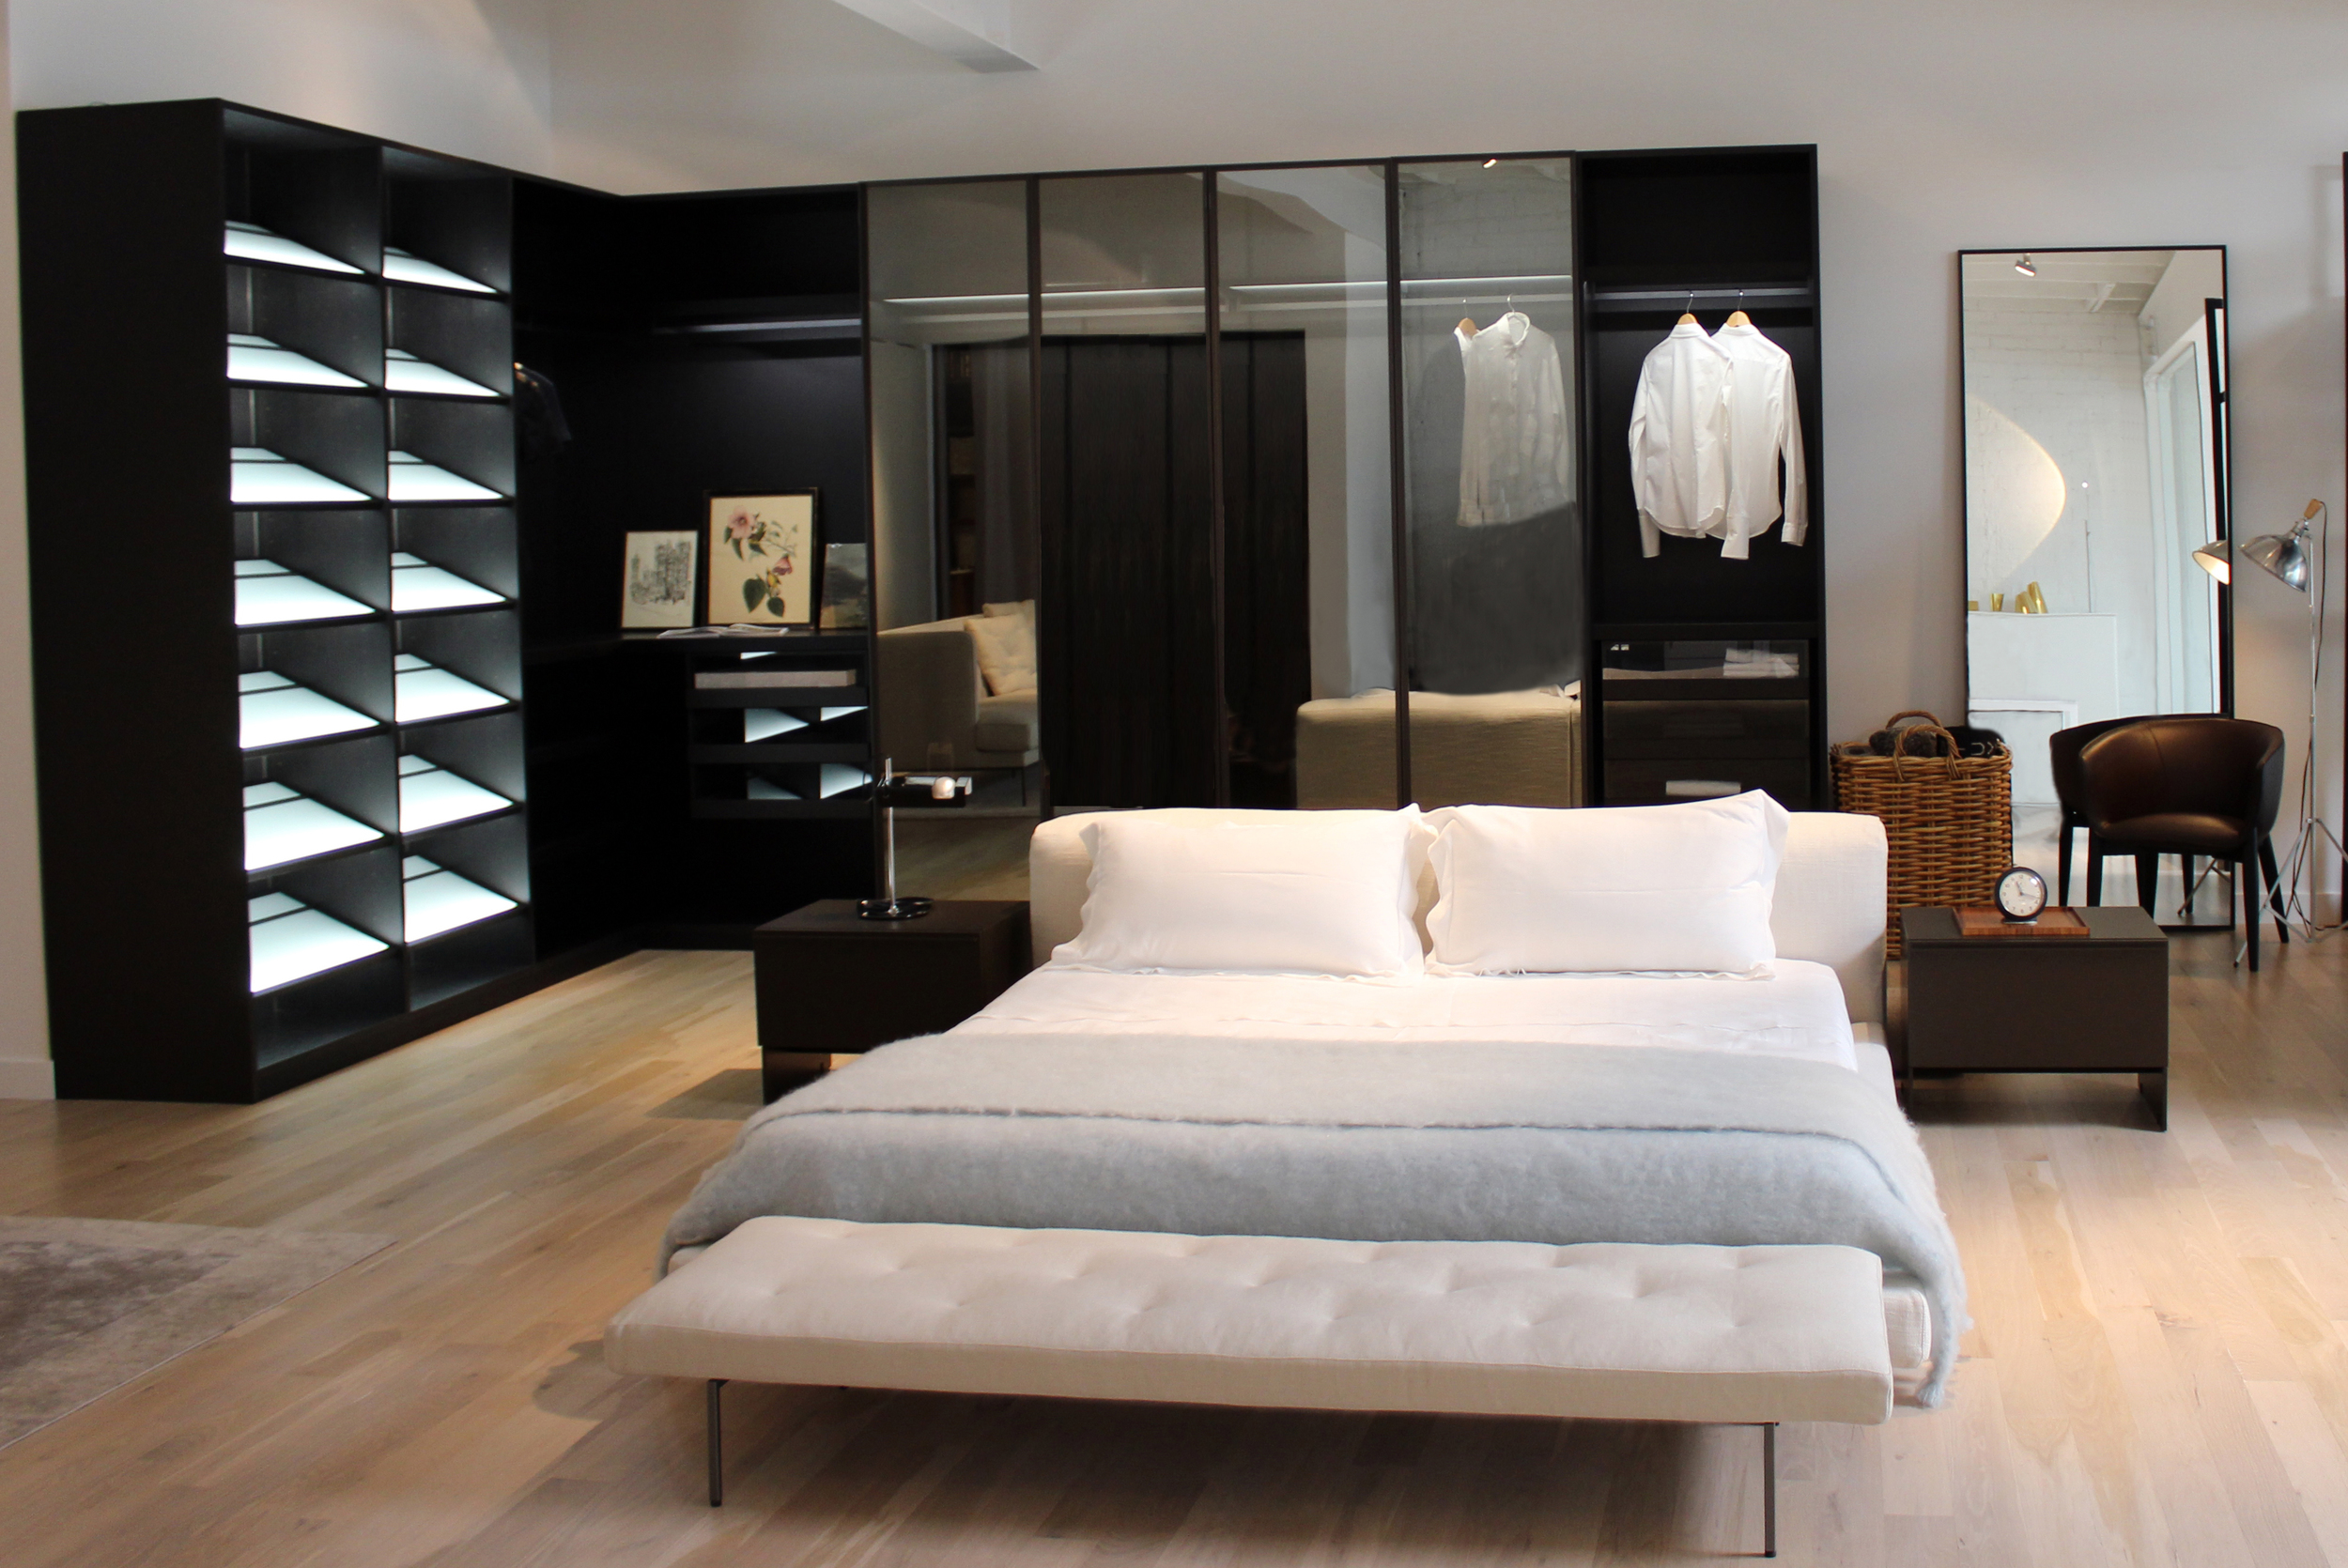 Our 2015 night area features a custom walk-in closet by  Porro  with the Softwall Bed and Lipp Bench  by Living Divani. #livingdivani #porro   #pierolissoni   #modern #architects #designers #design #LosAngeles #moderninteriors